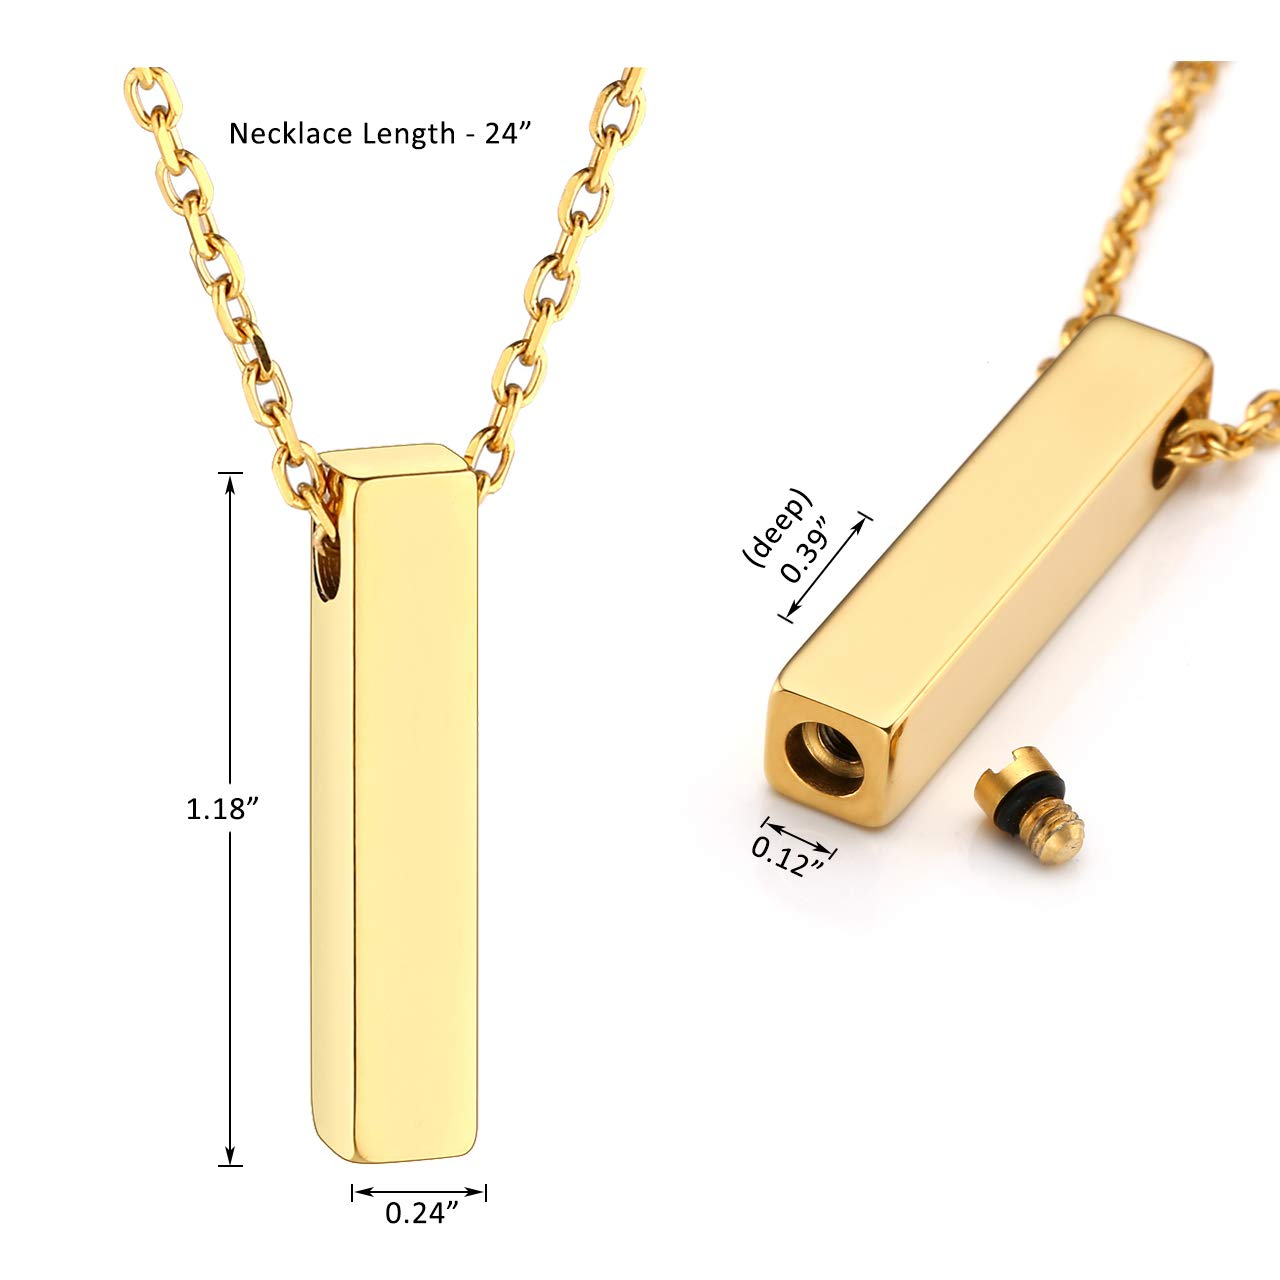 Personalized Master Free Engraving Custom Engraved Stainless Steel Cuboid Spuare Bar Urn Pendant Necklace for Women Men Keepsake Memorial Ashes Cremation Jewelry+Funnel Kit+Gift Box